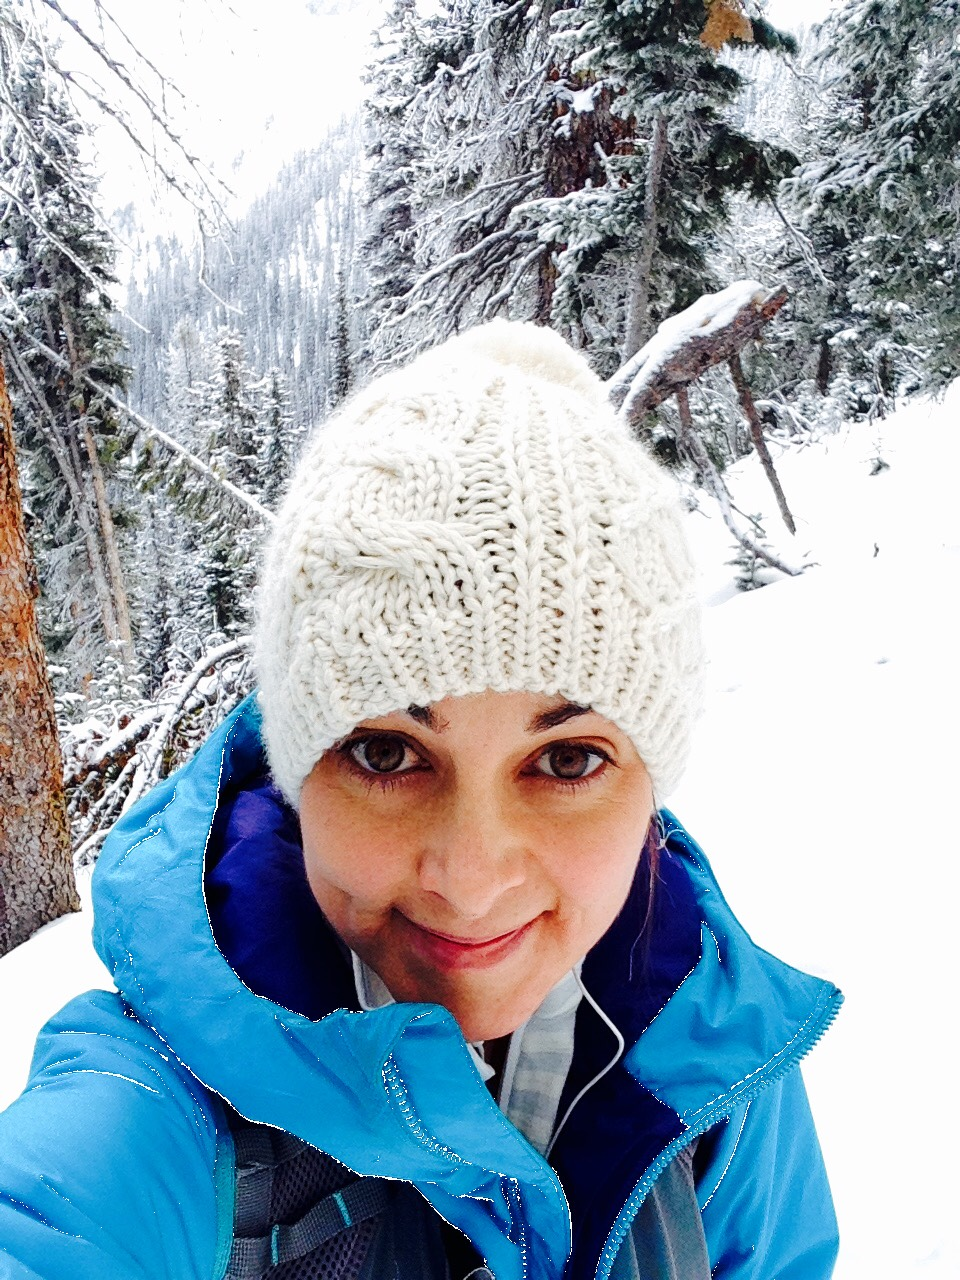 A good hike in the fresh air during a moment of calm...restorative and refreshing in the -20 temps!